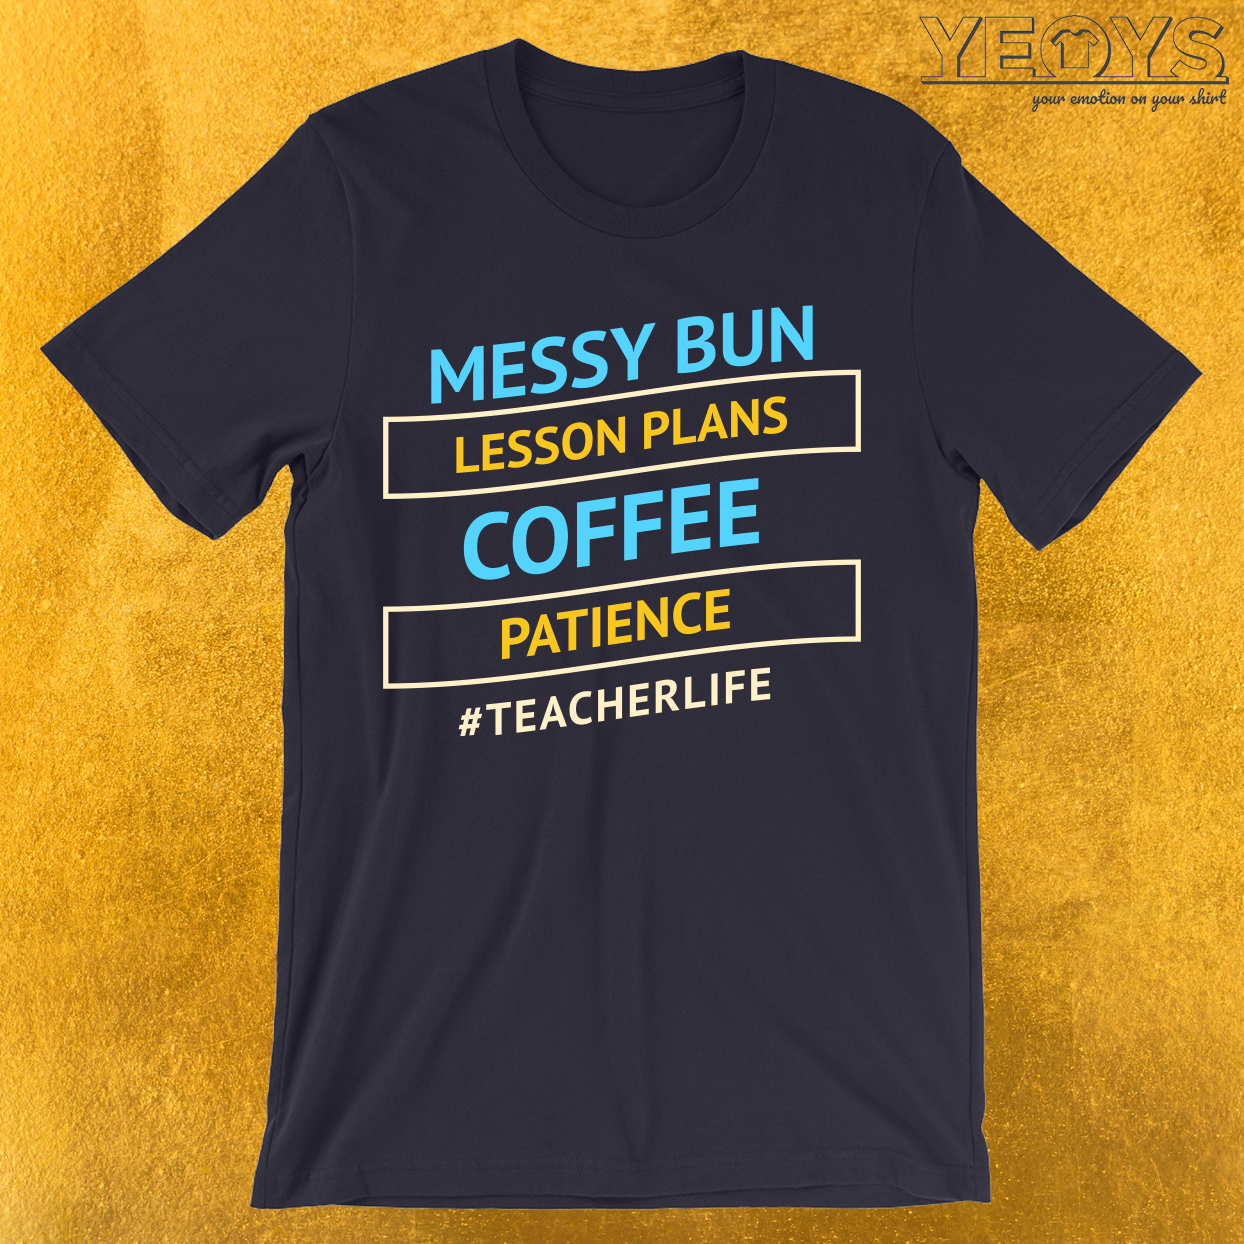 Messy Bun Teacher Life T-Shirt